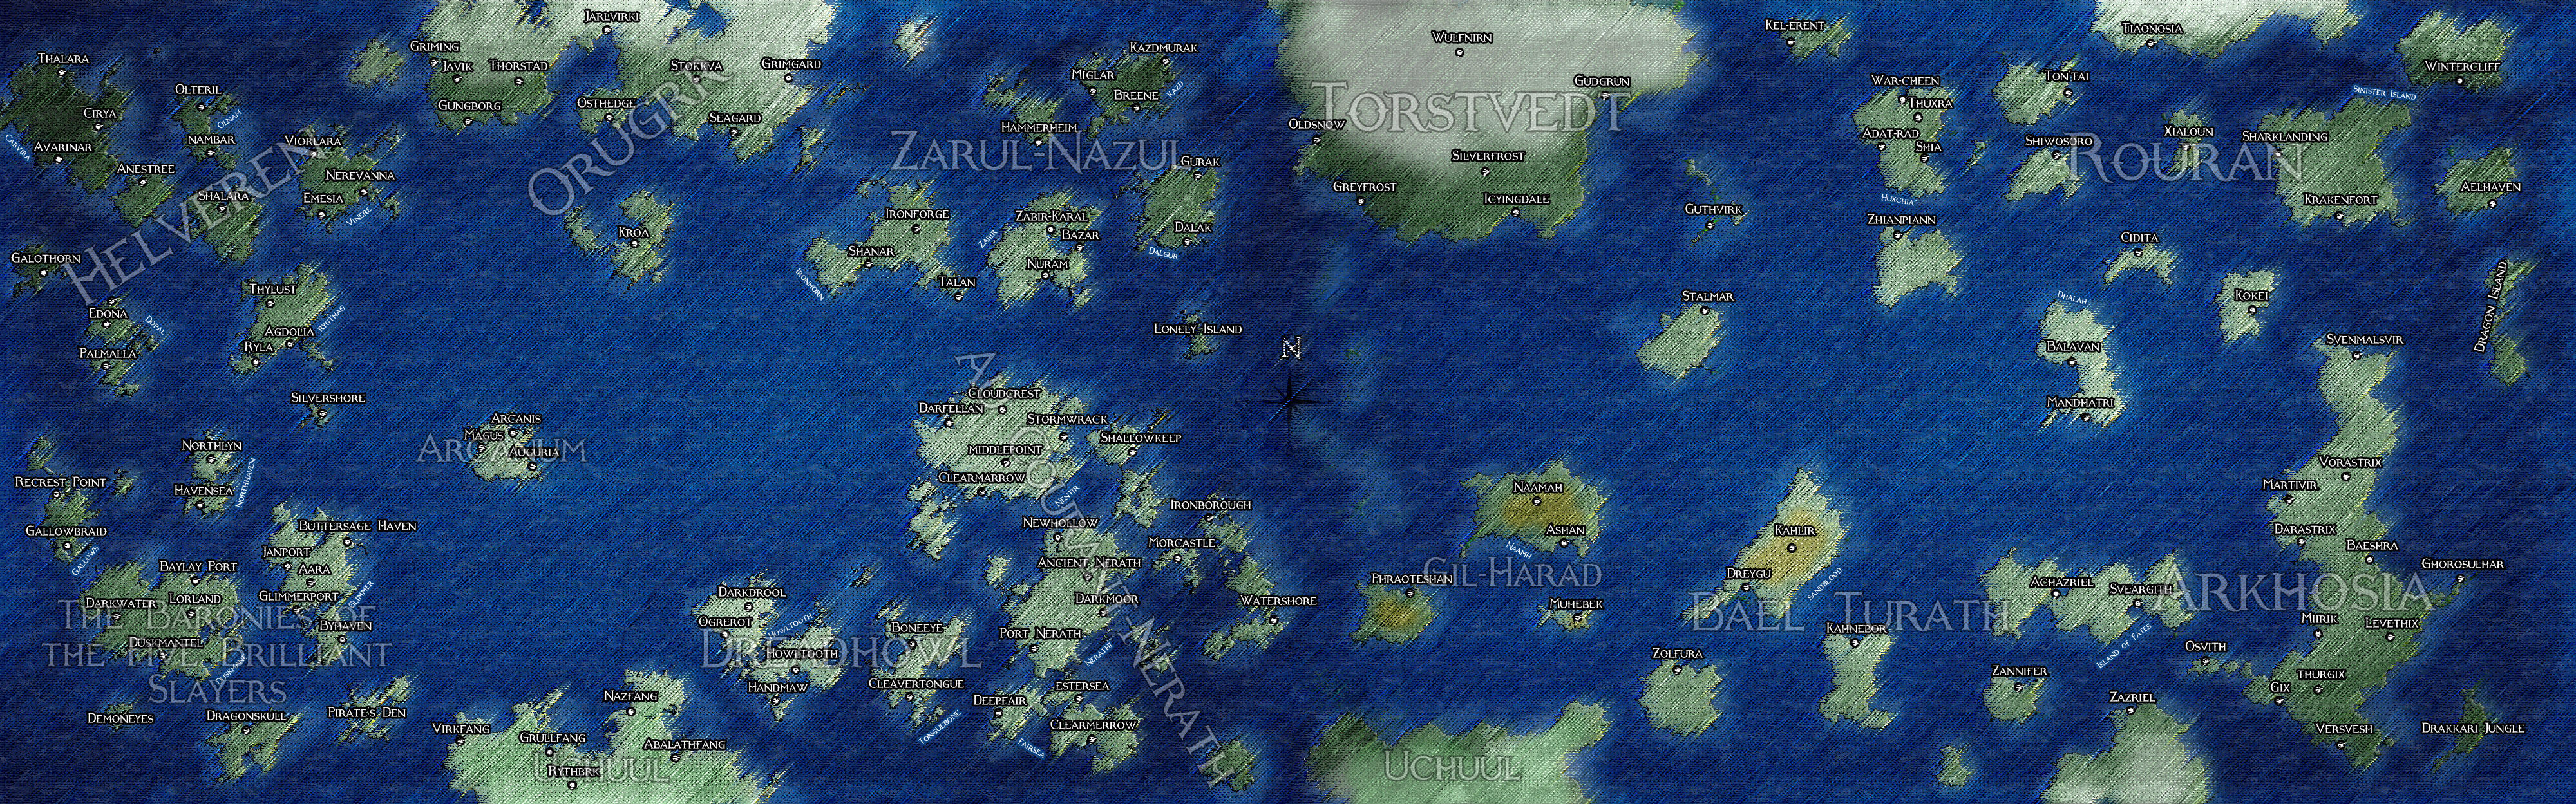 pirate Campaign Map by ThedasScholar